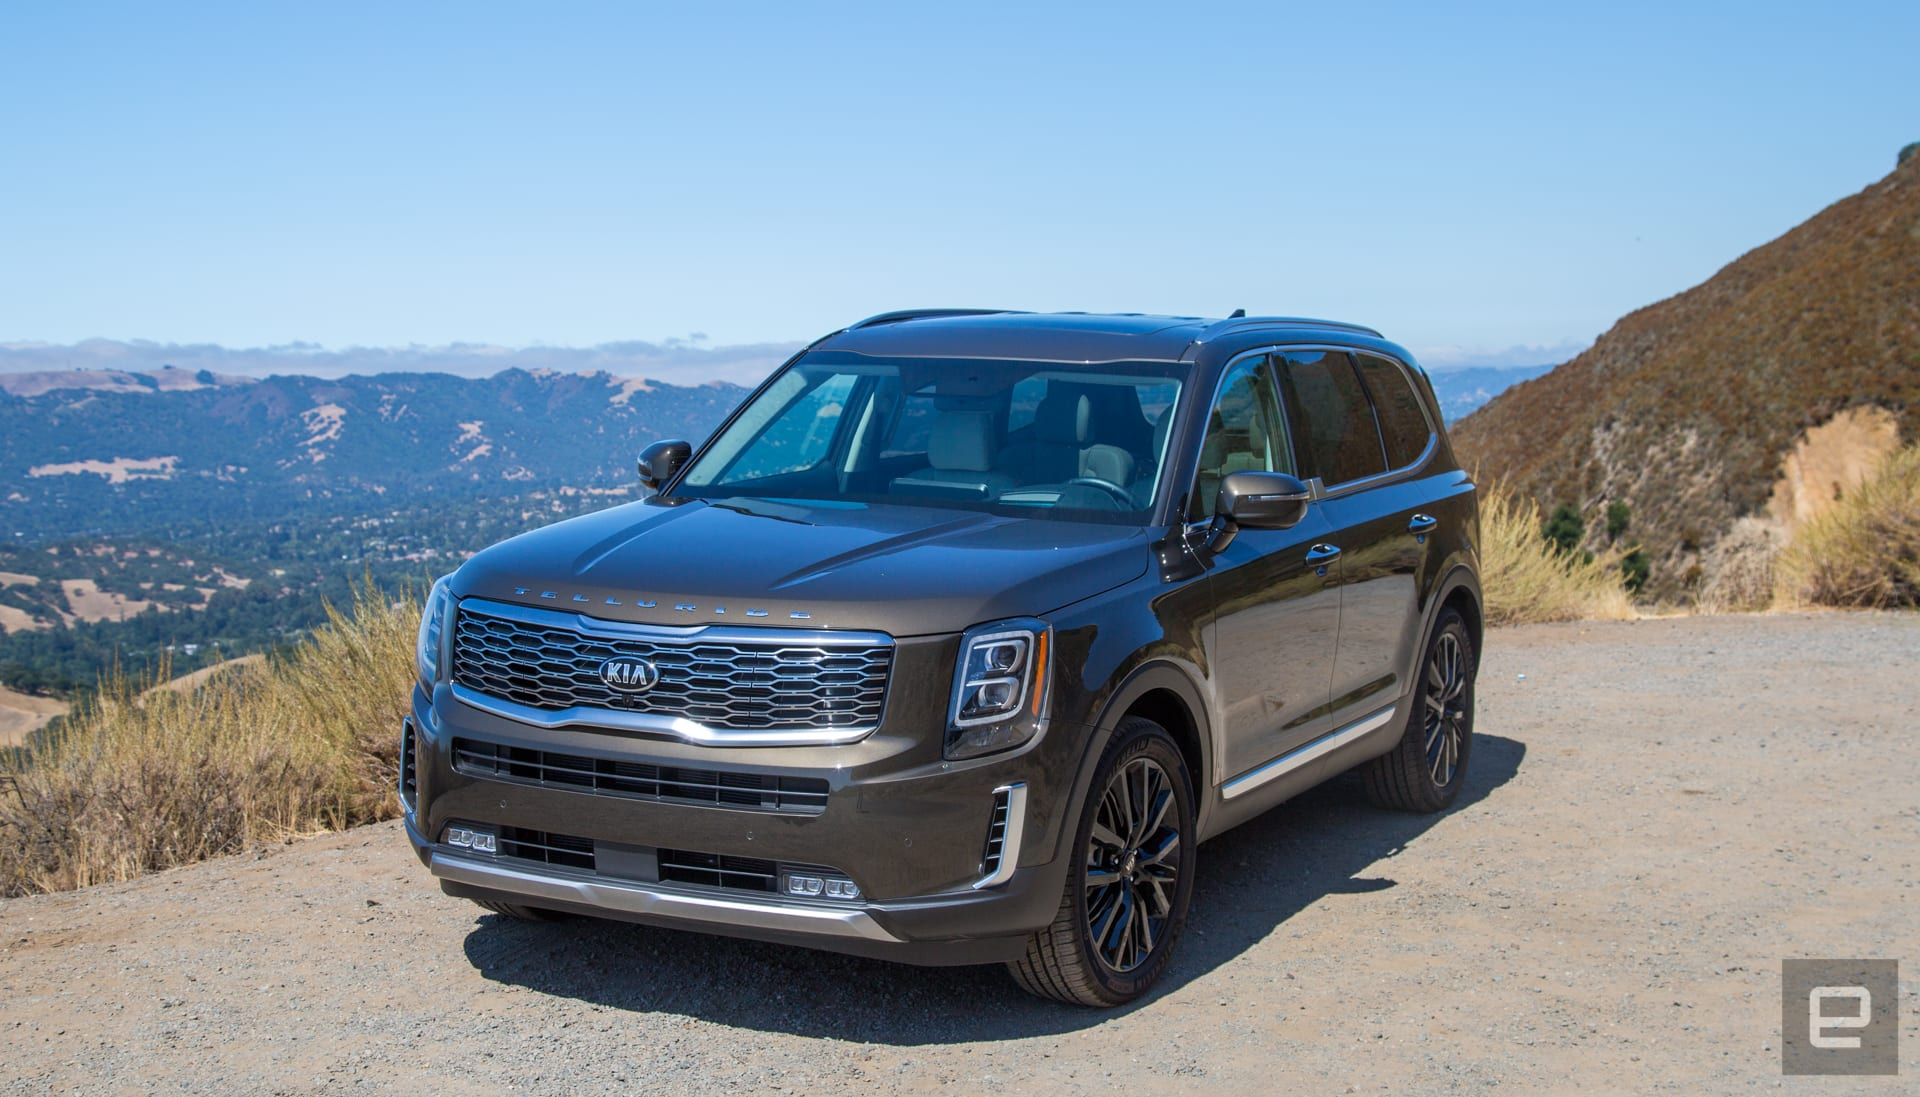 The Kia Telluride Is Surprisingly High Tech And Stylish For